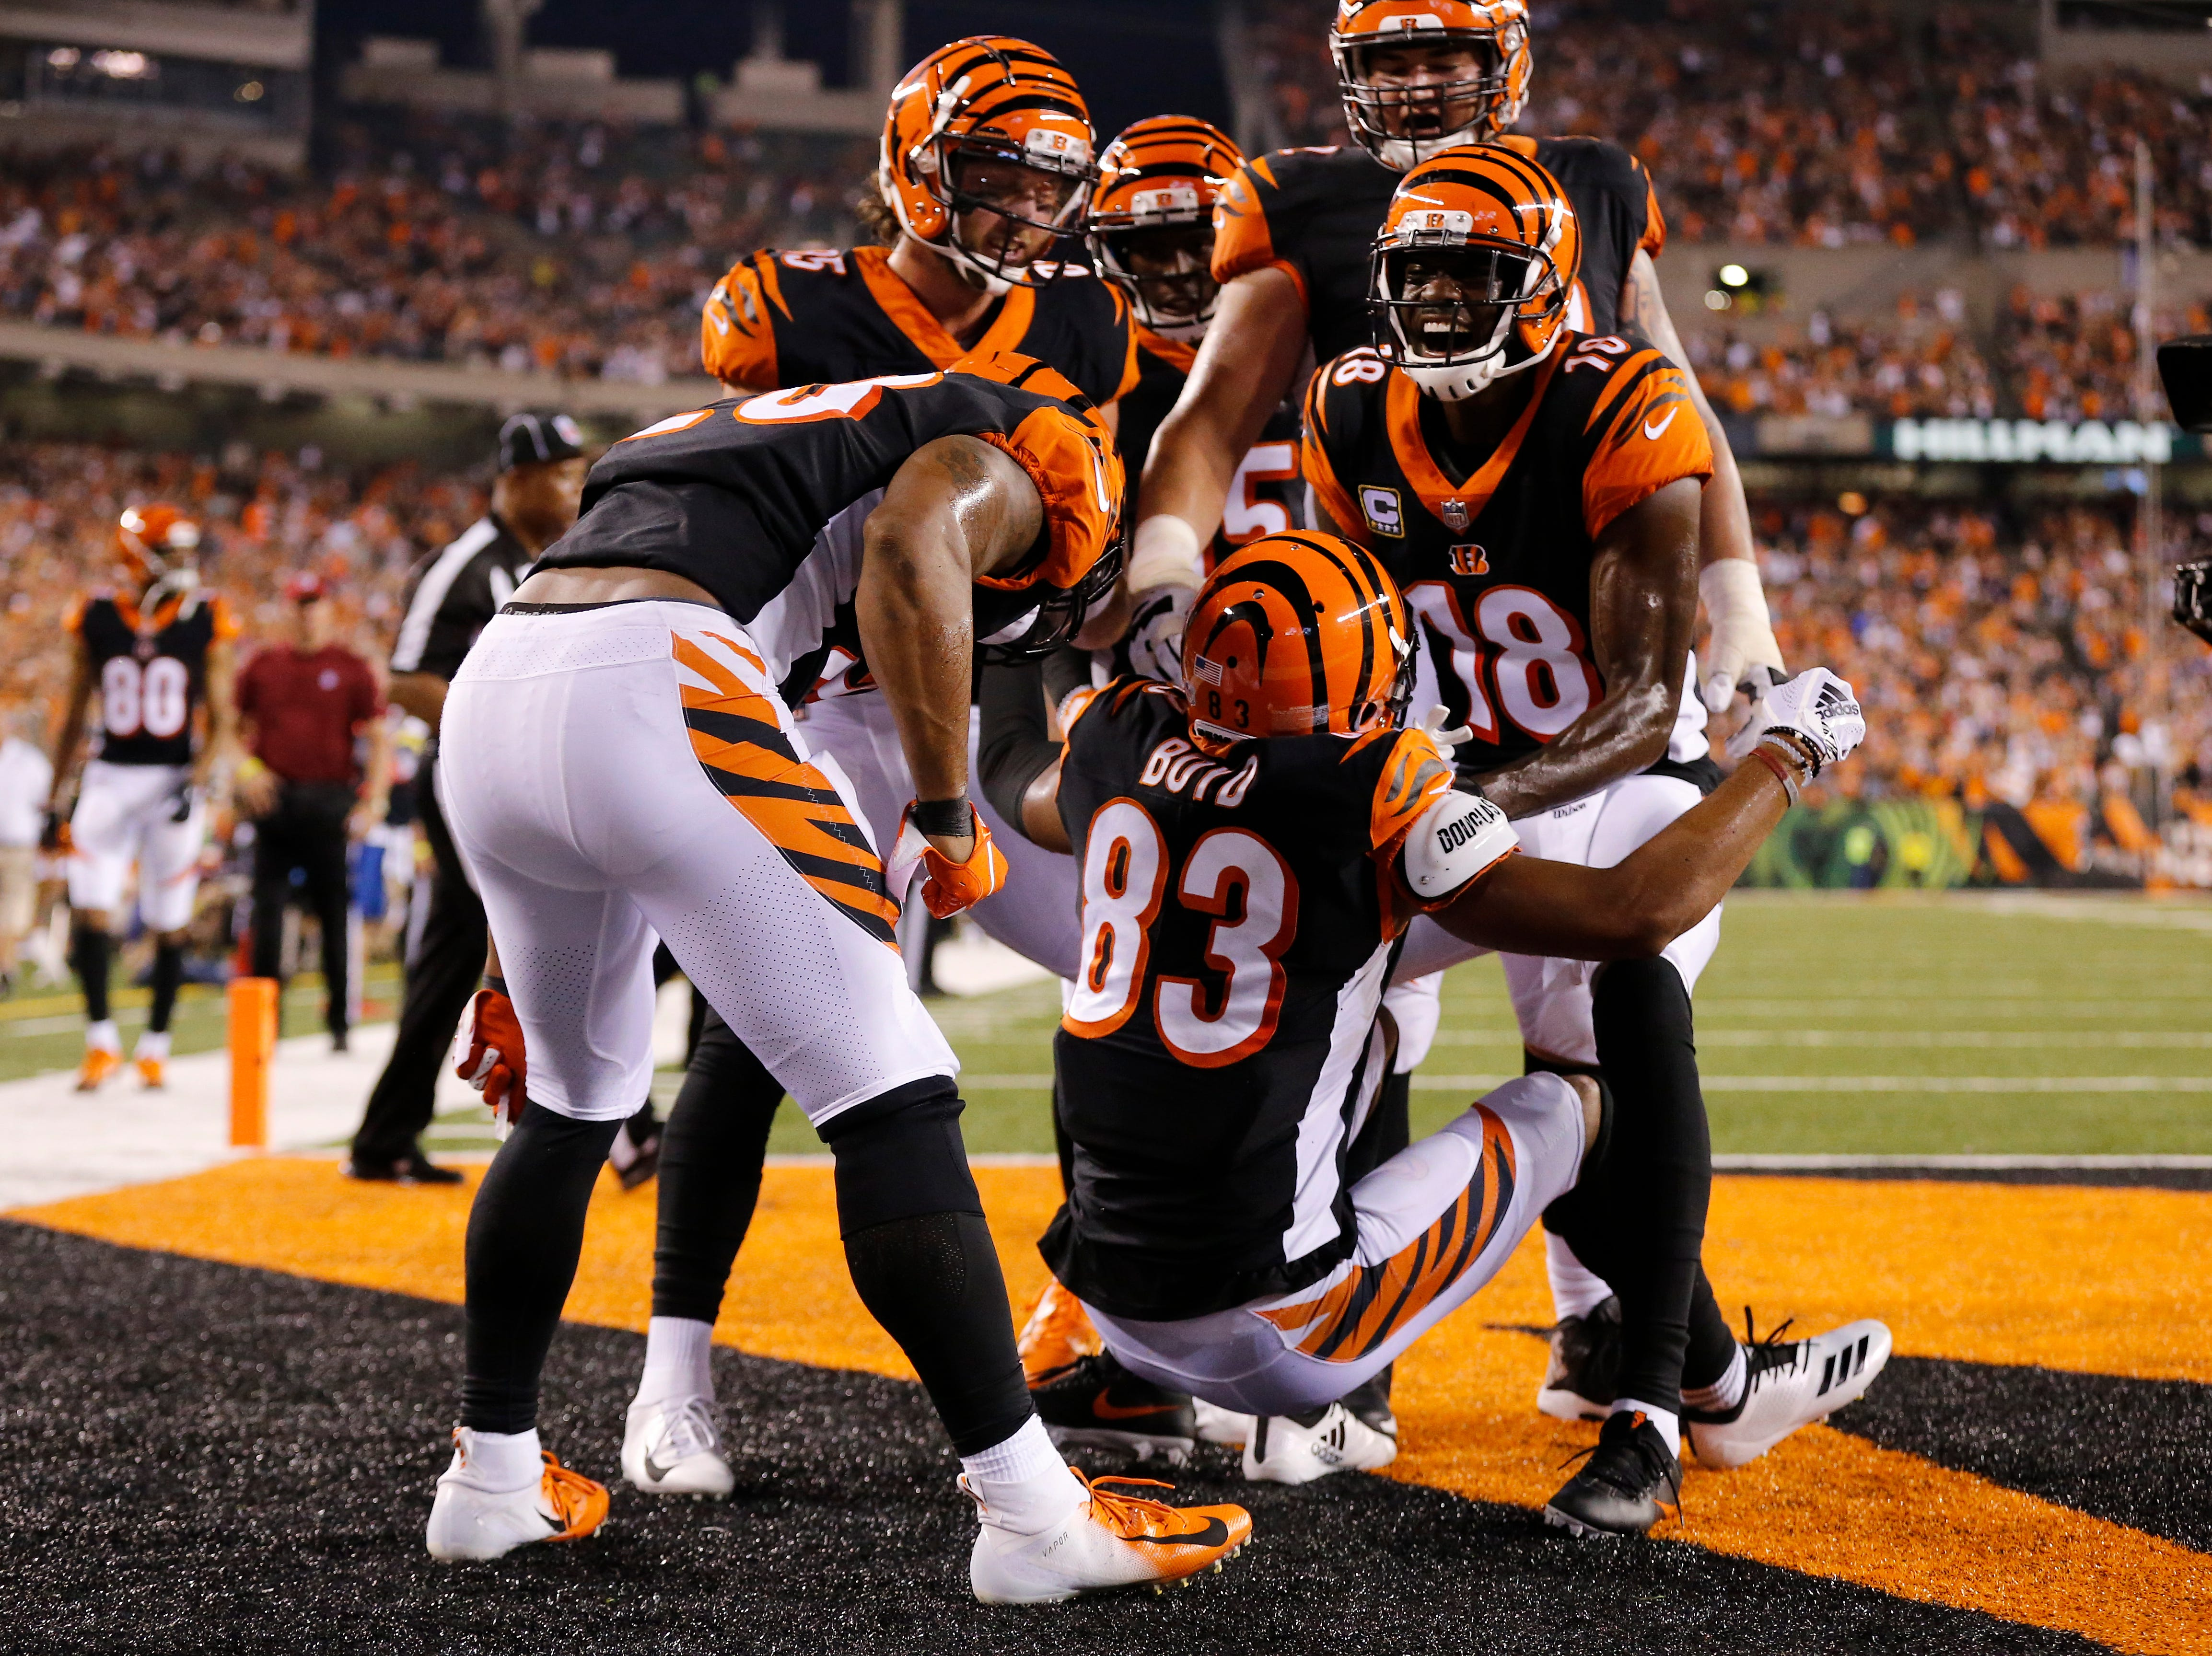 The Cincinnati Bengals offense celebrates a touchdown catch by wide receiver Tyler Boyd (83) in the second quarter of the NFL Week 2 game between the Cincinnati Bengals and the Baltimore Ravens at Paul Brown Stadium in downtown Cincinnati on Thursday, Sept. 13, 2018. The Bengals led 28-14 at halftime.